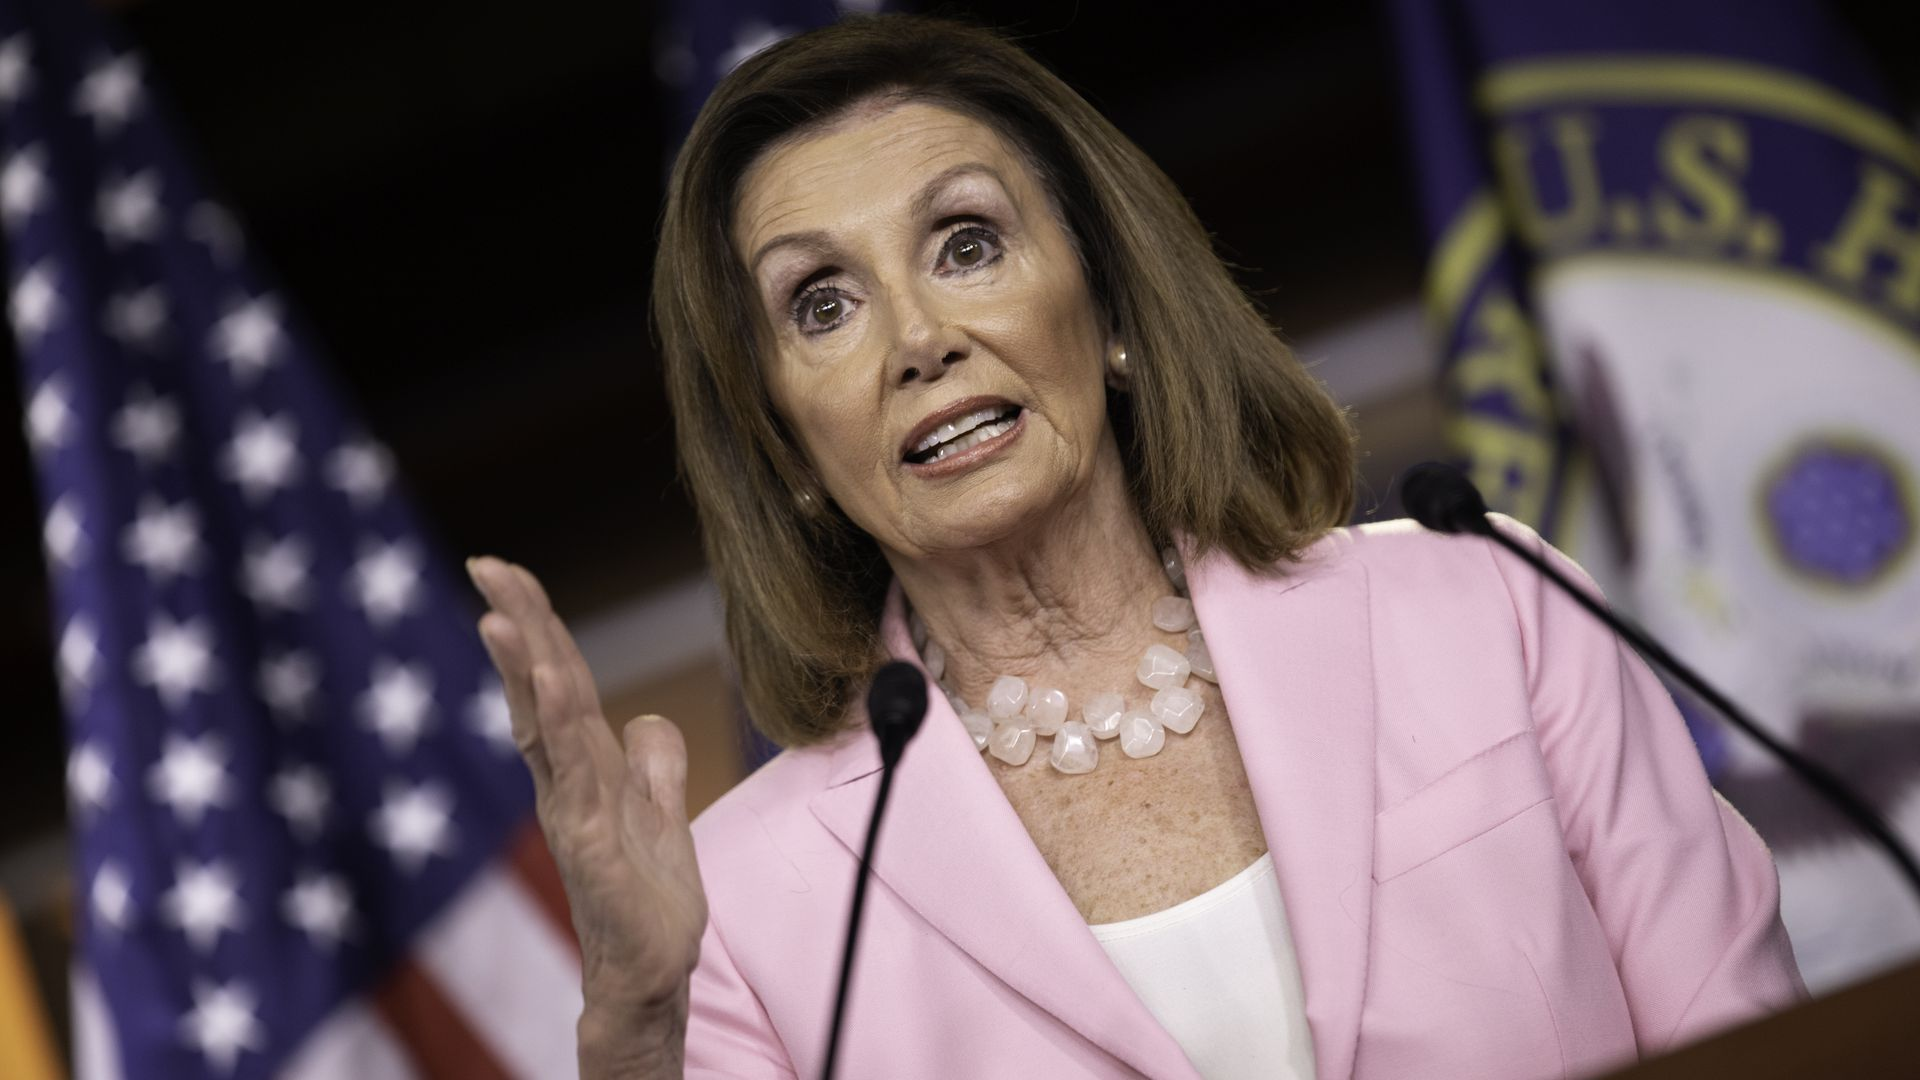 Nancy Pelosi: Congress should allow sitting presidents to be indicted